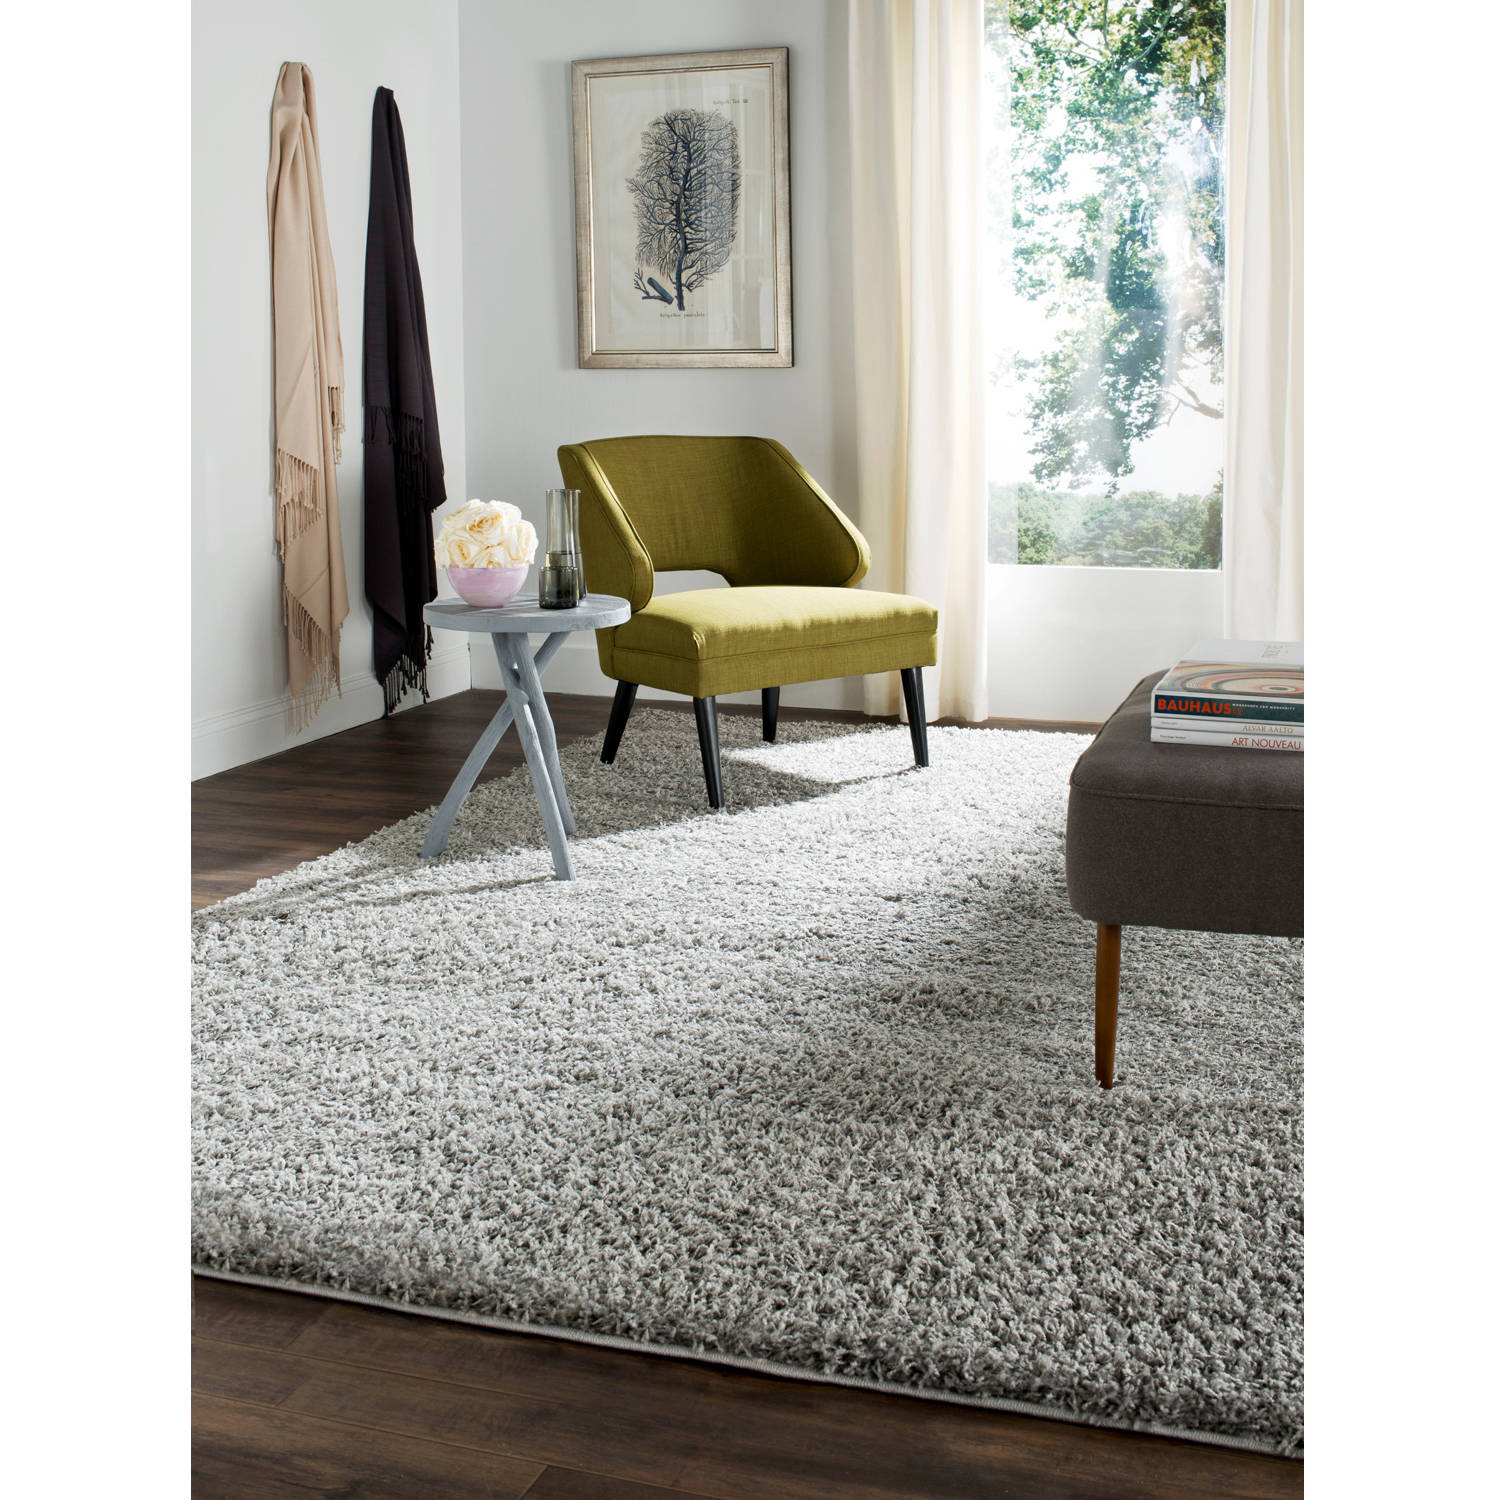 Safavieh Lavena Power-Loomed Shag Area Rug or Runner